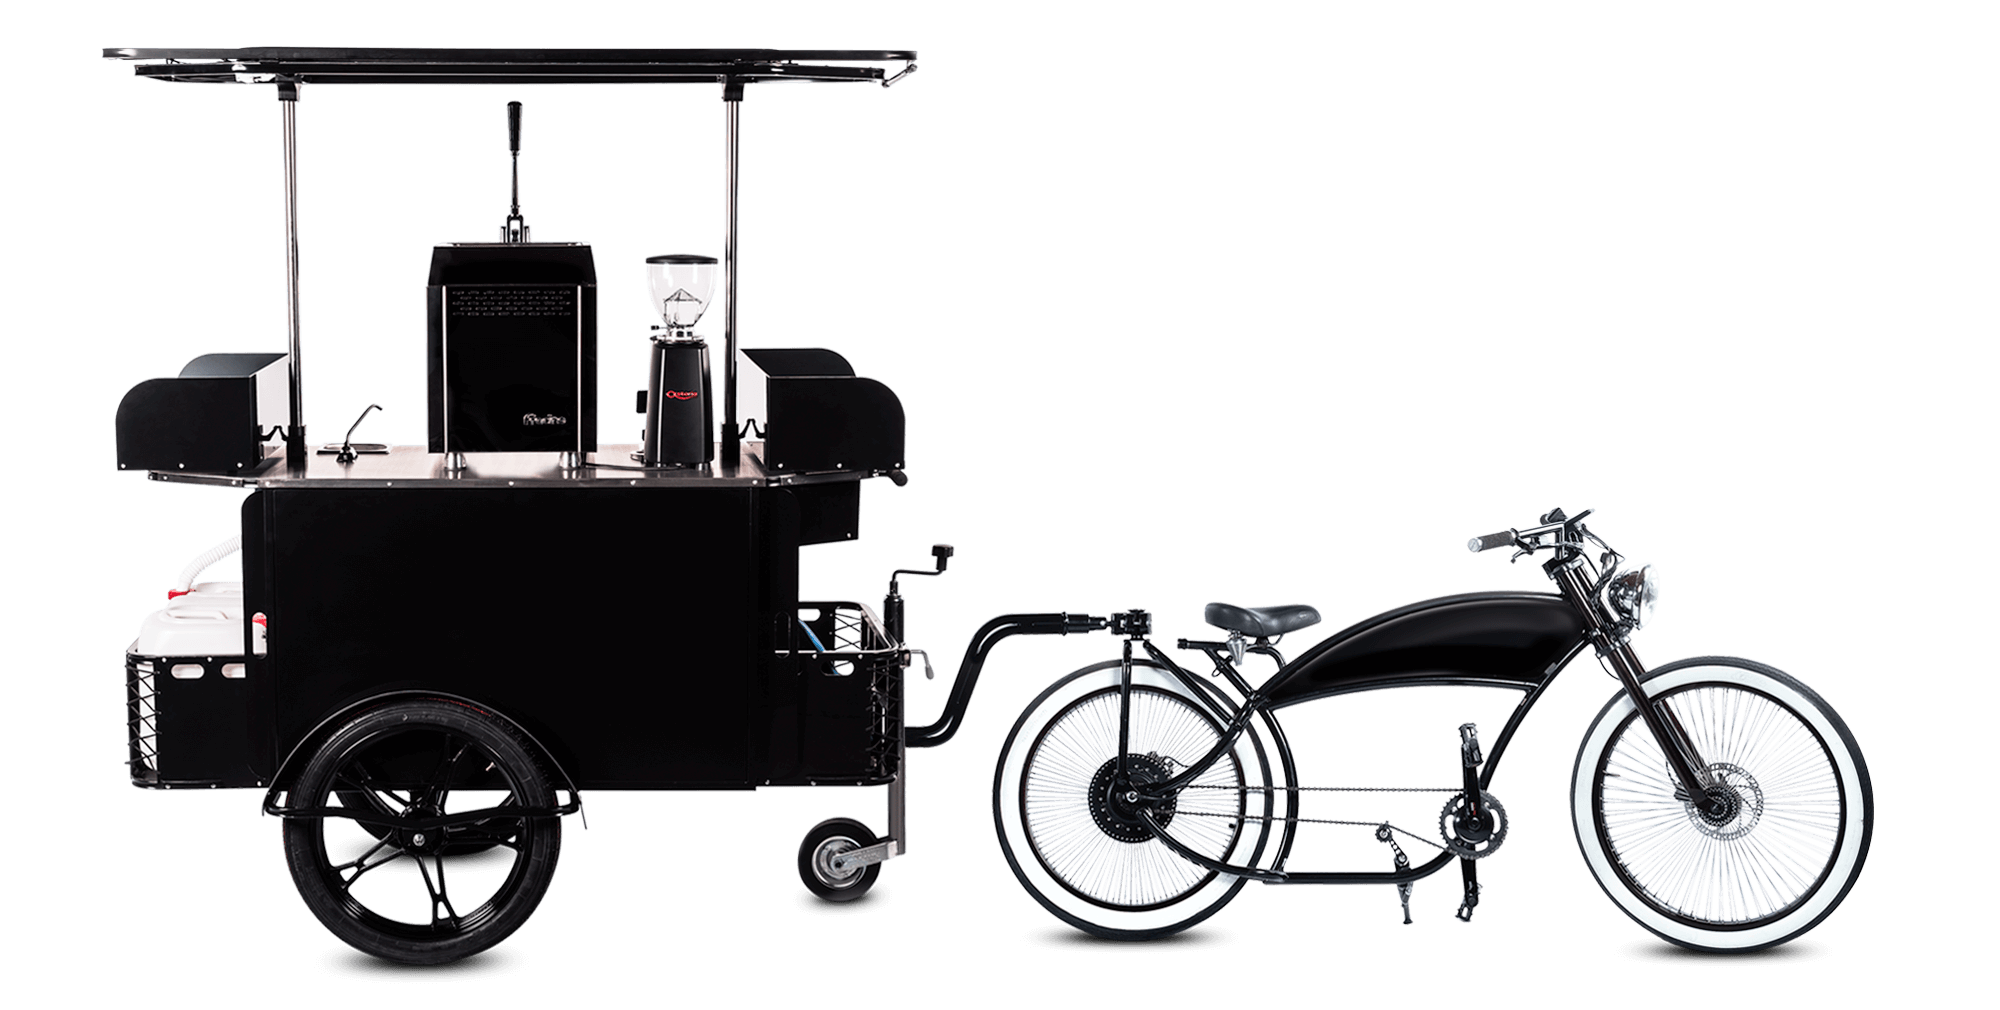 Coffee bike manufactured by BizzOnWheels